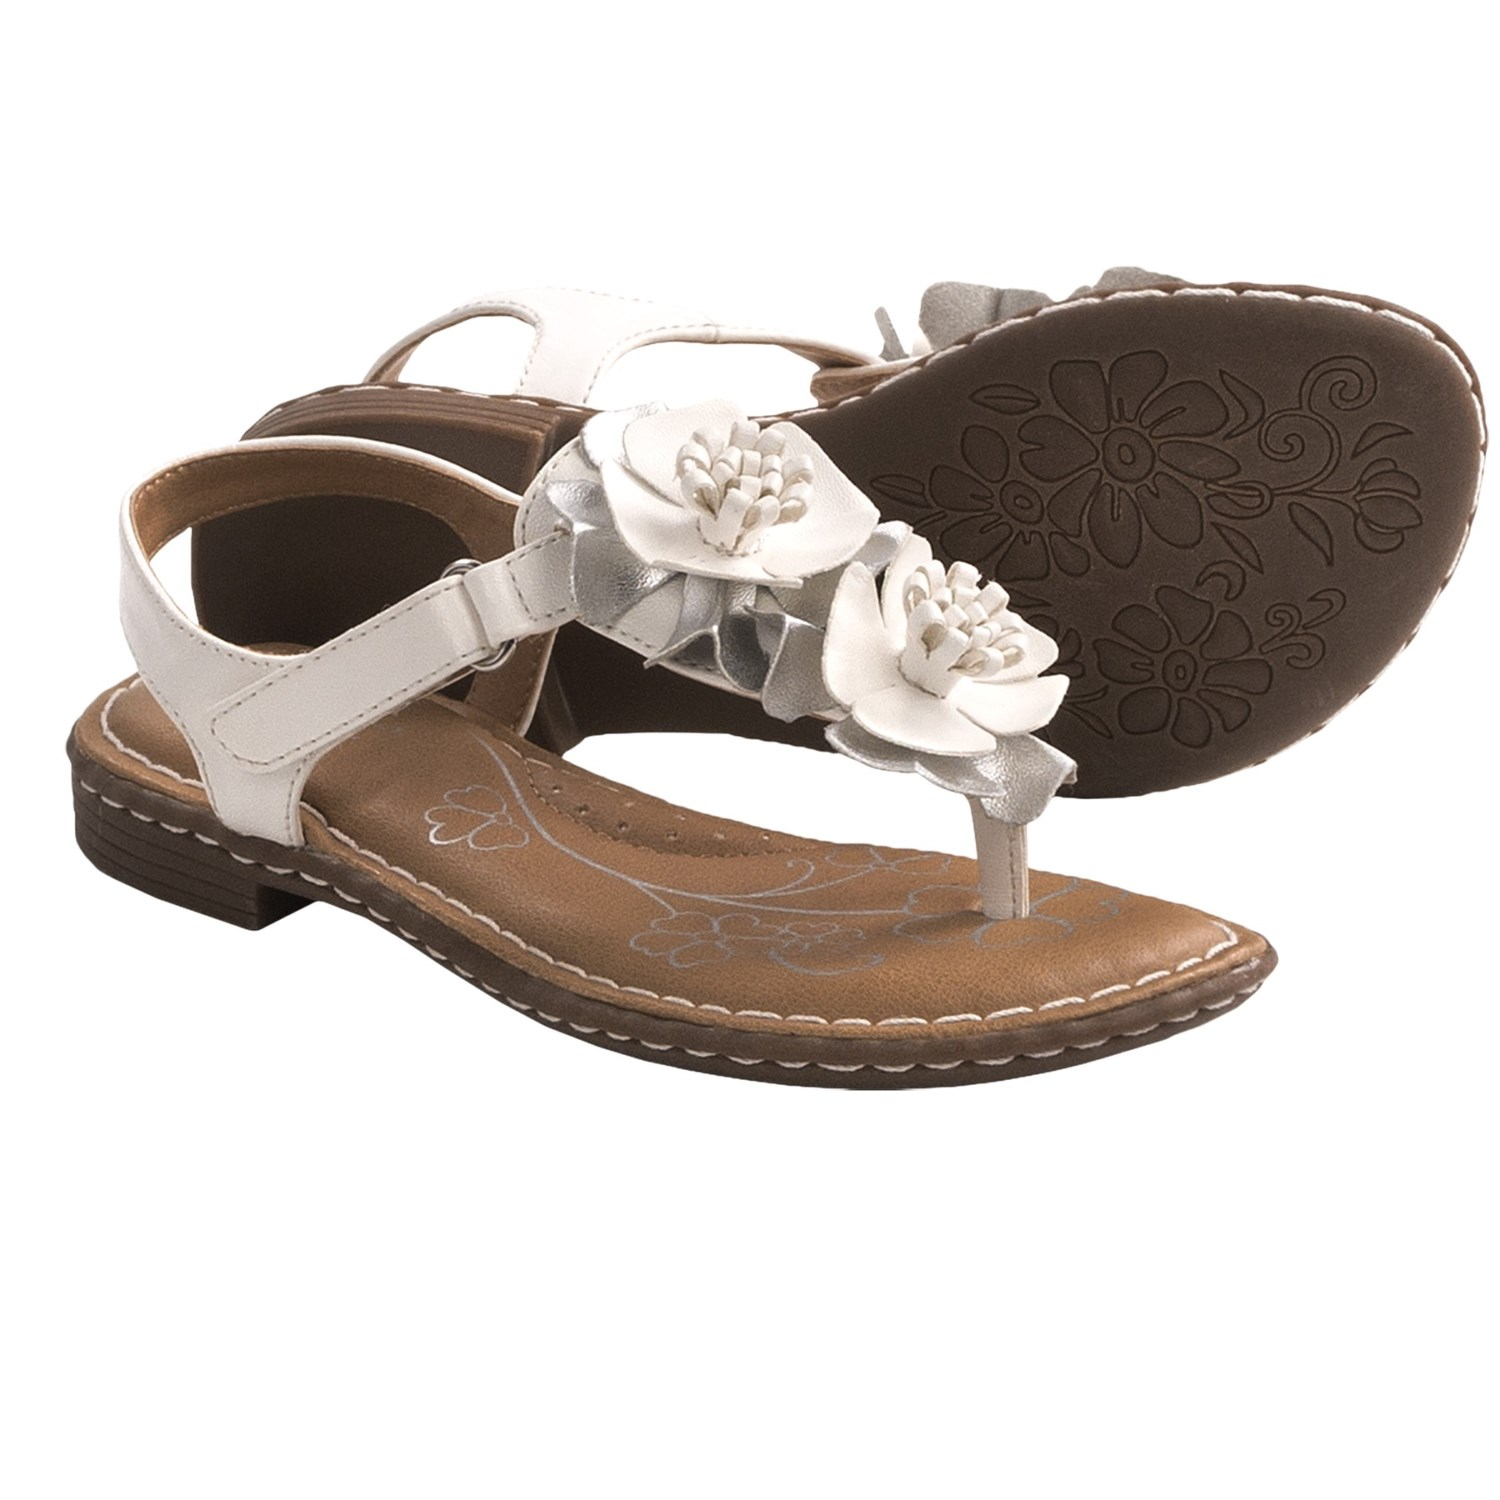 B.O.C. by Born Kristi Floral Sandals (For Girls) - Save 29